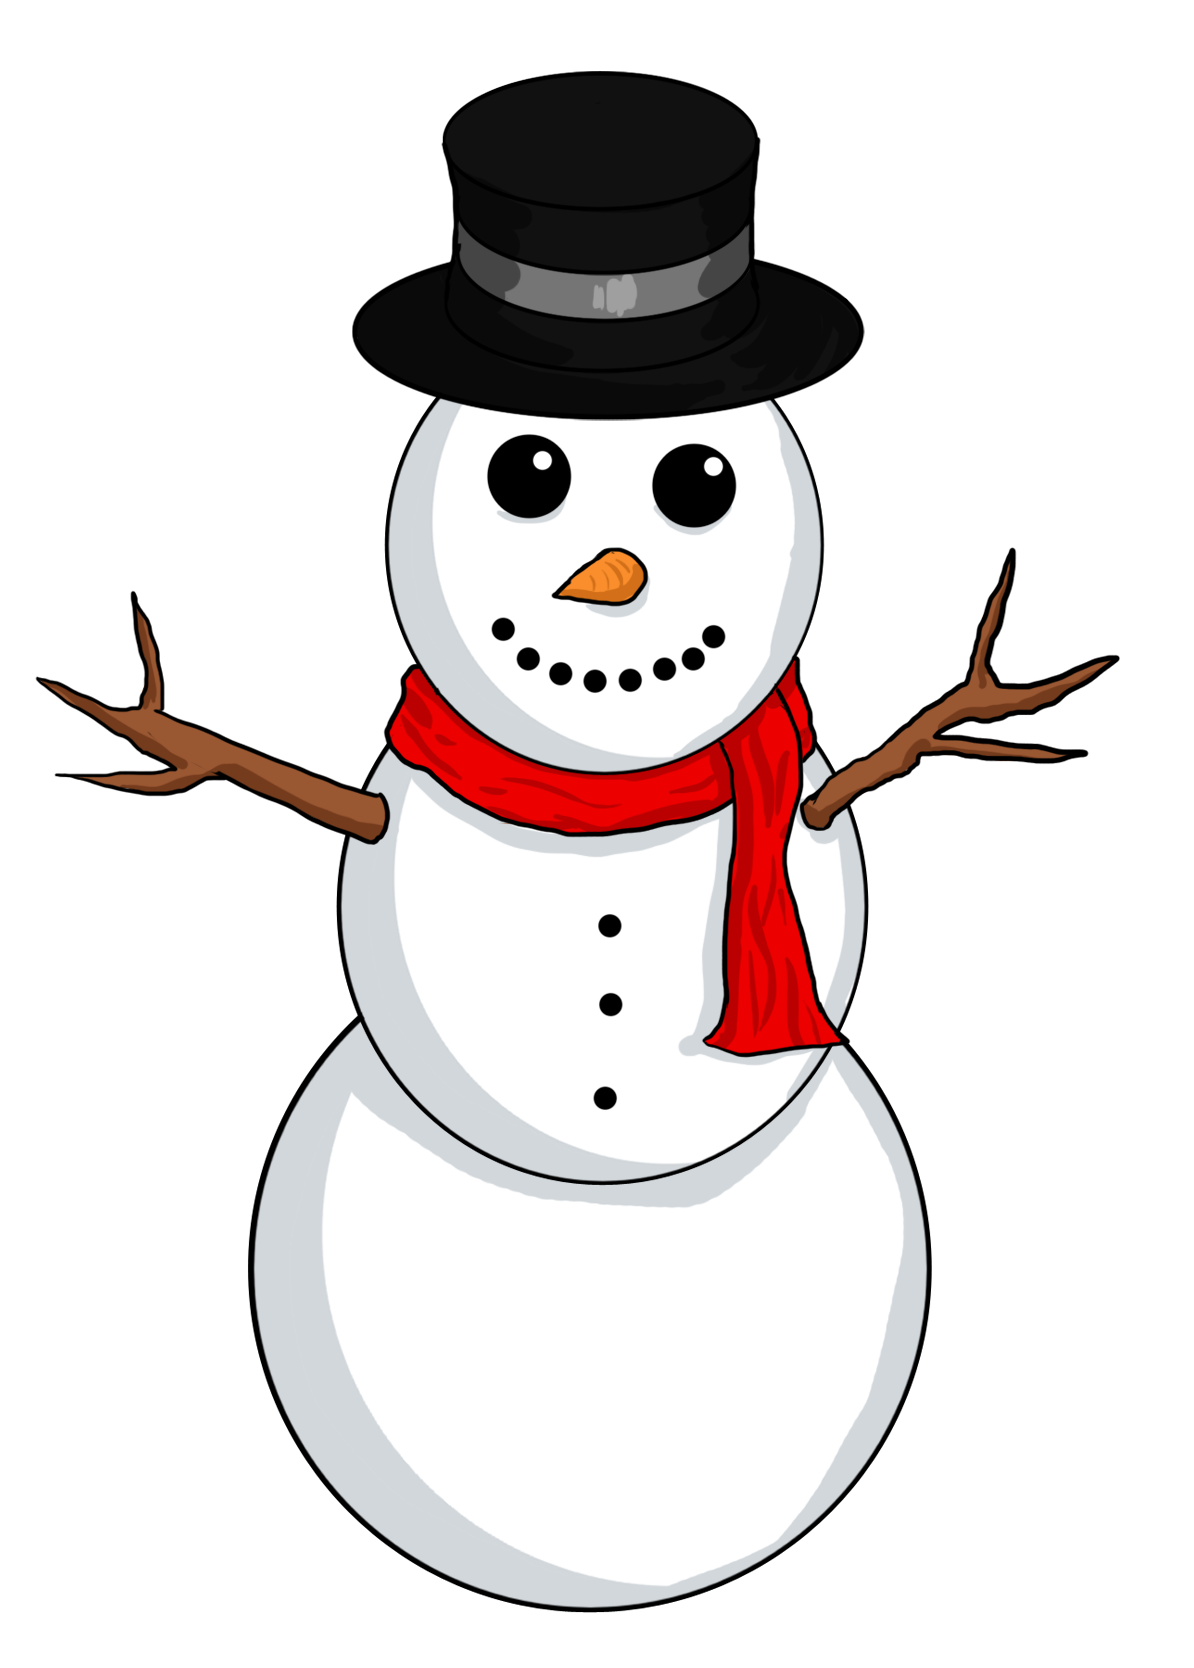 Sparks clipart white background. Free snow man image